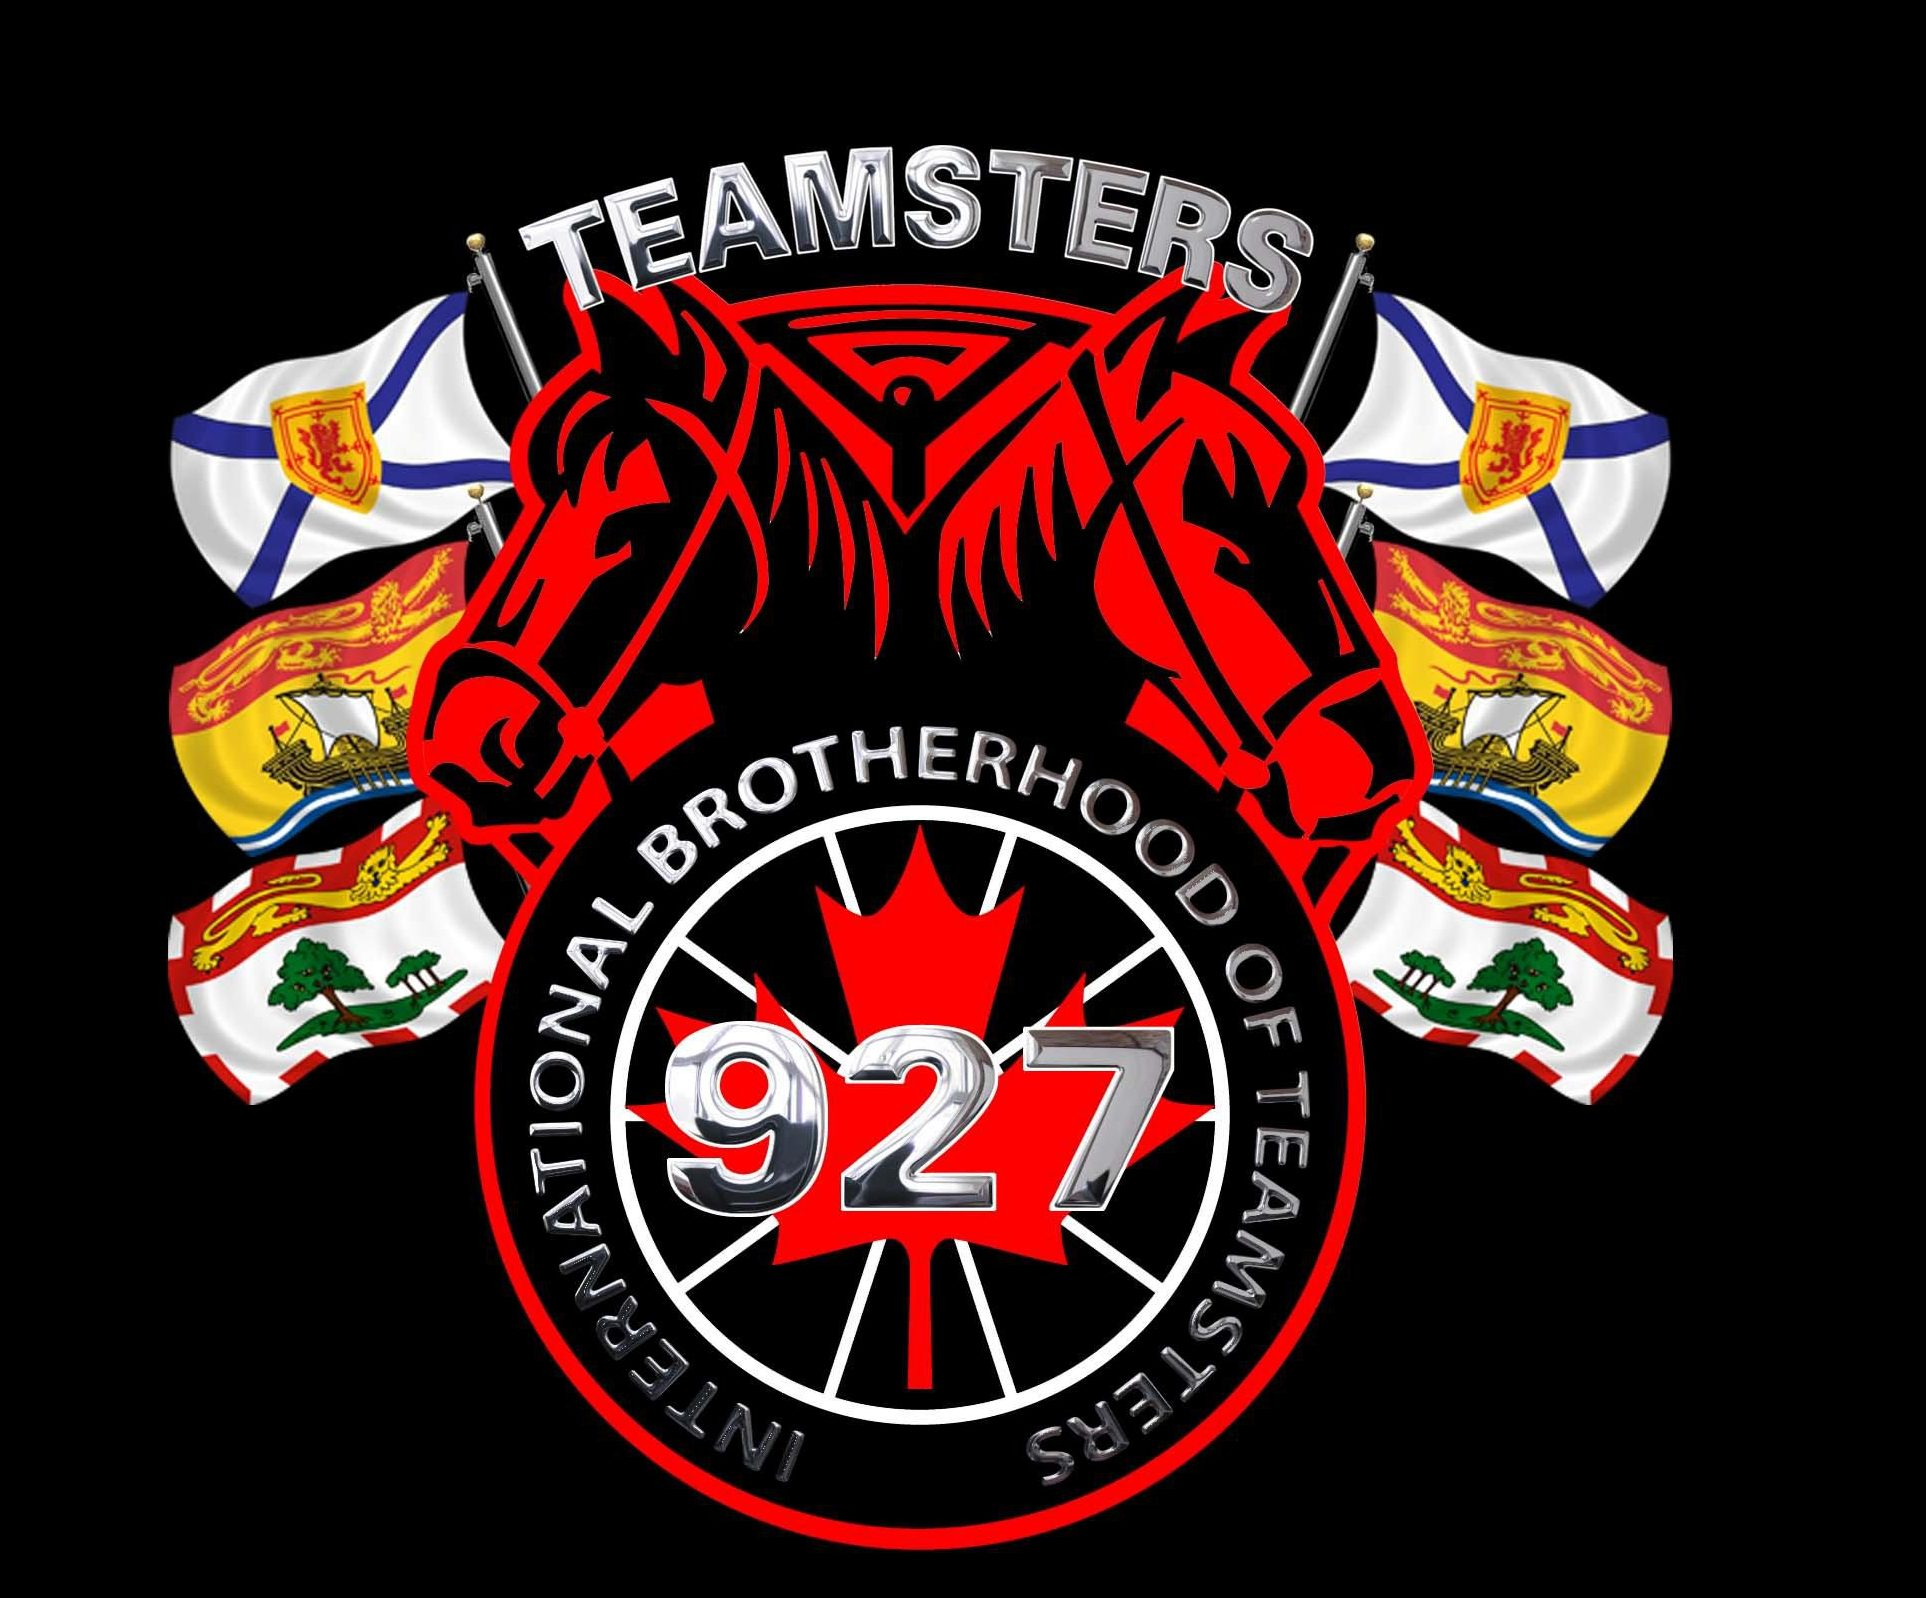 Teamsters Local 927